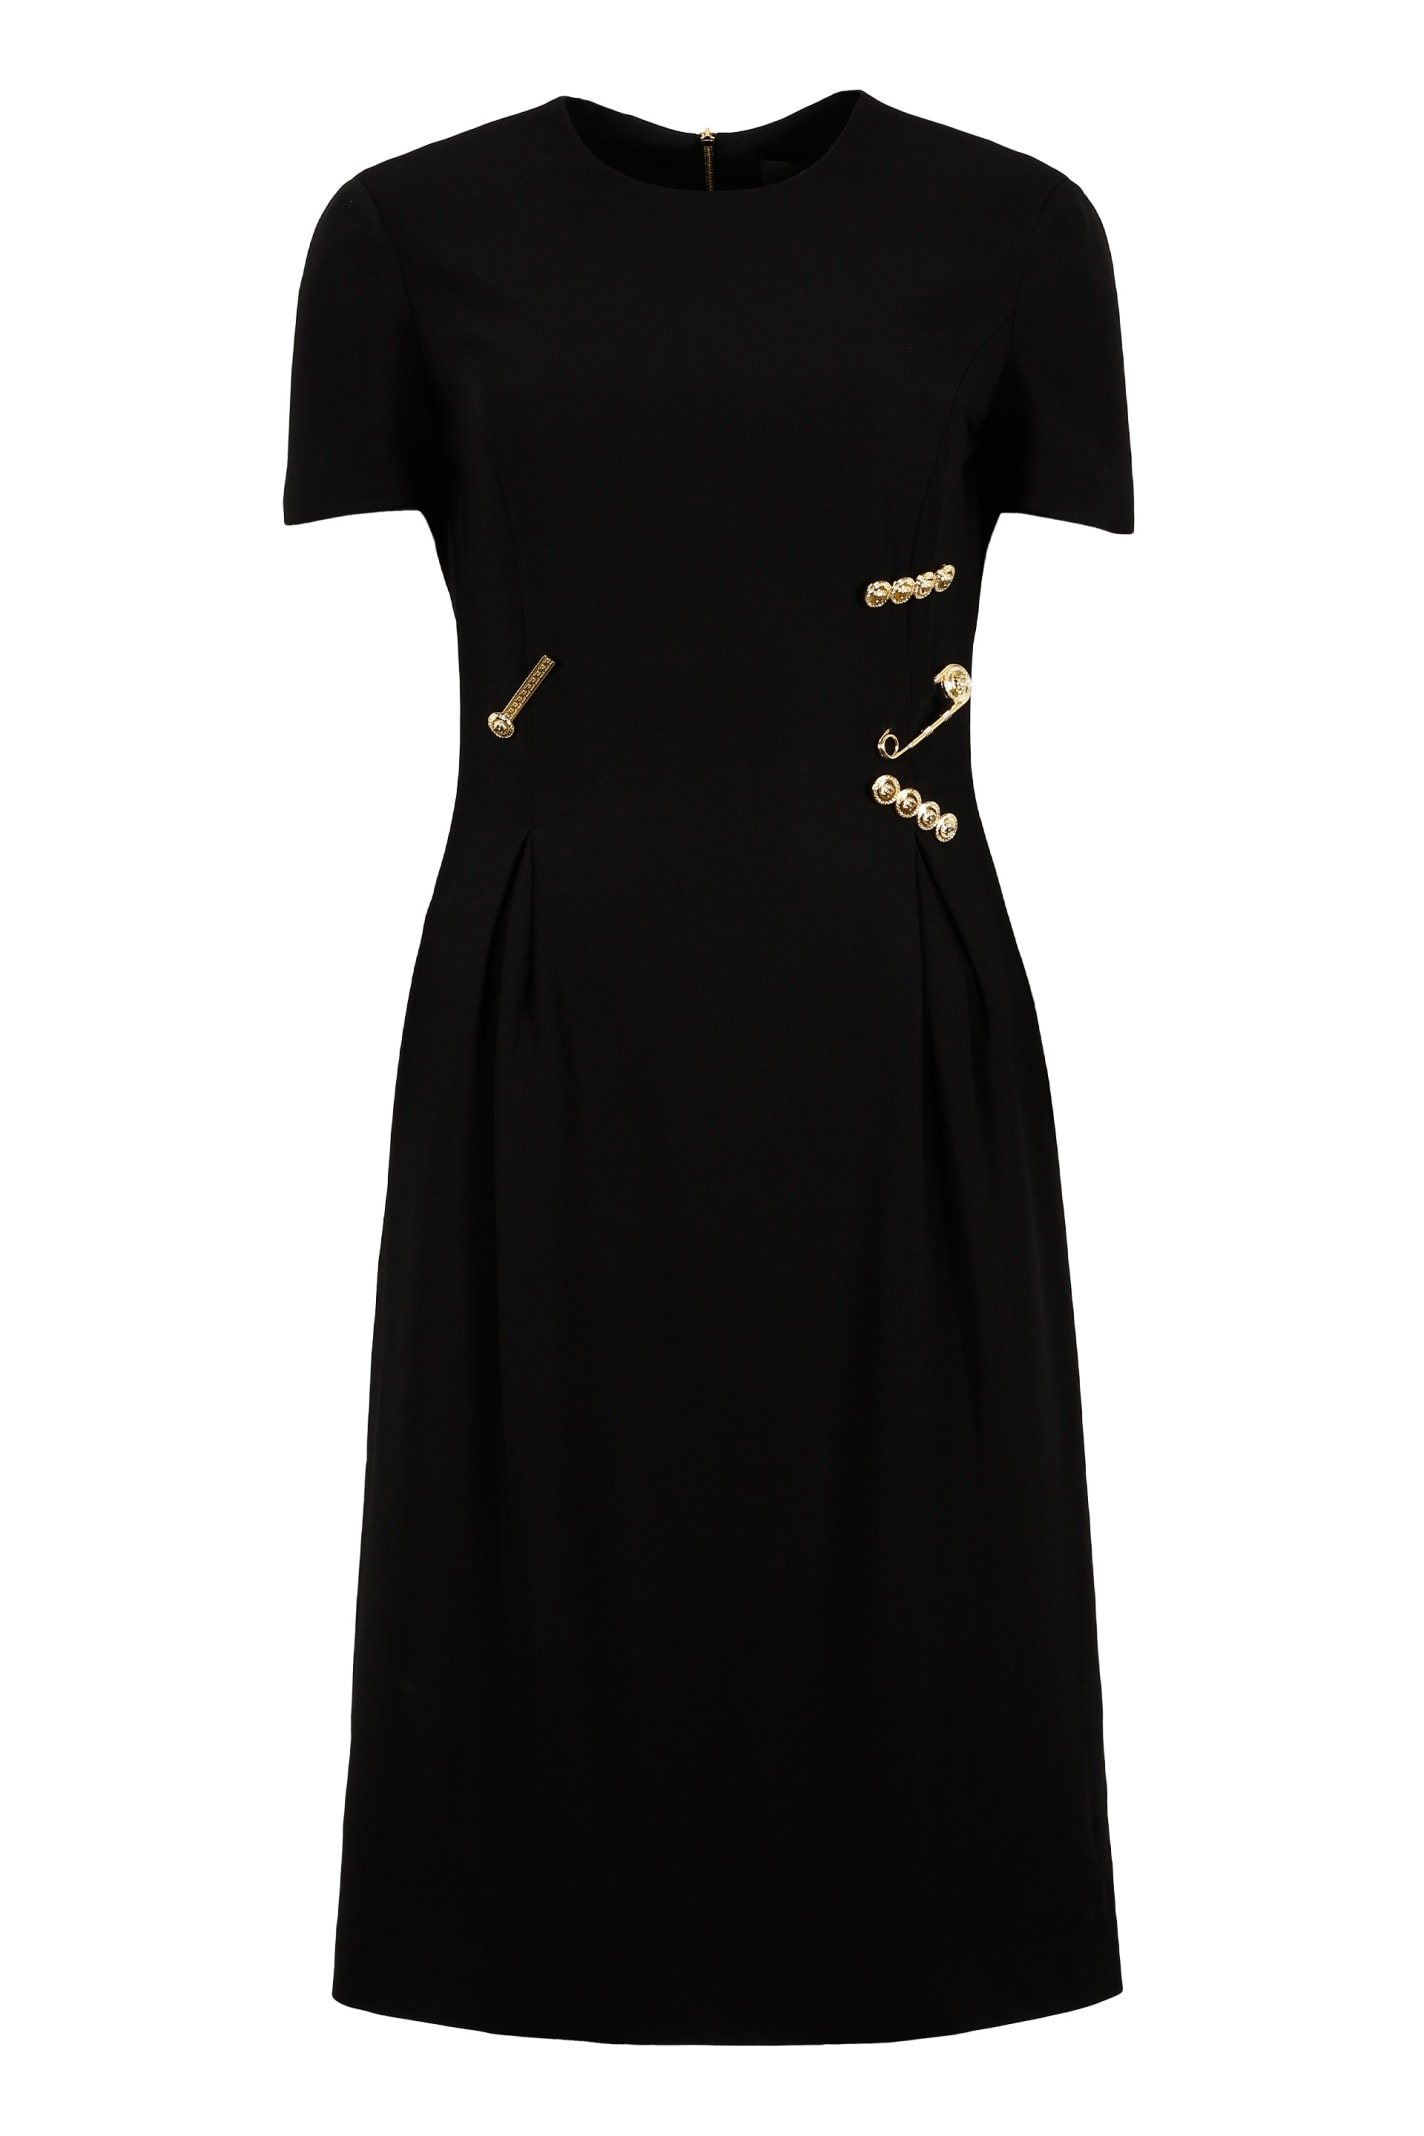 Buy Versace Decorative Safety Pins Sheath Dress online, shop Versace with free shipping